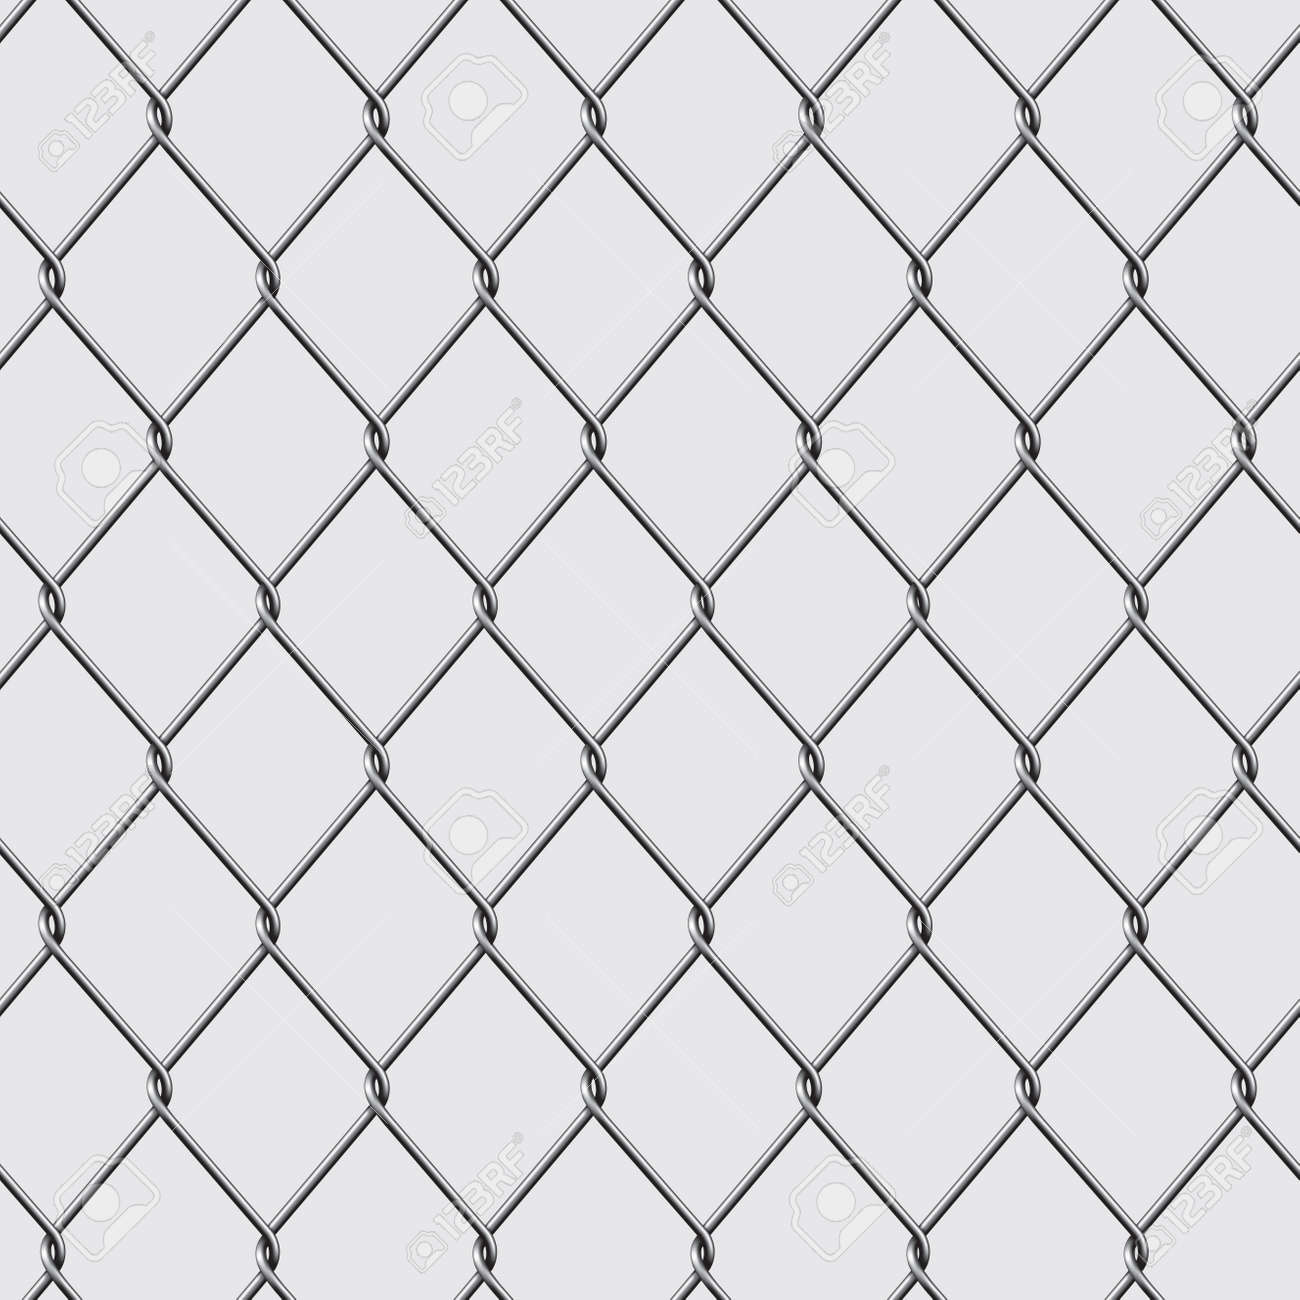 Metal chain link fence seamless isolated on background. Vector illustration - 46081431